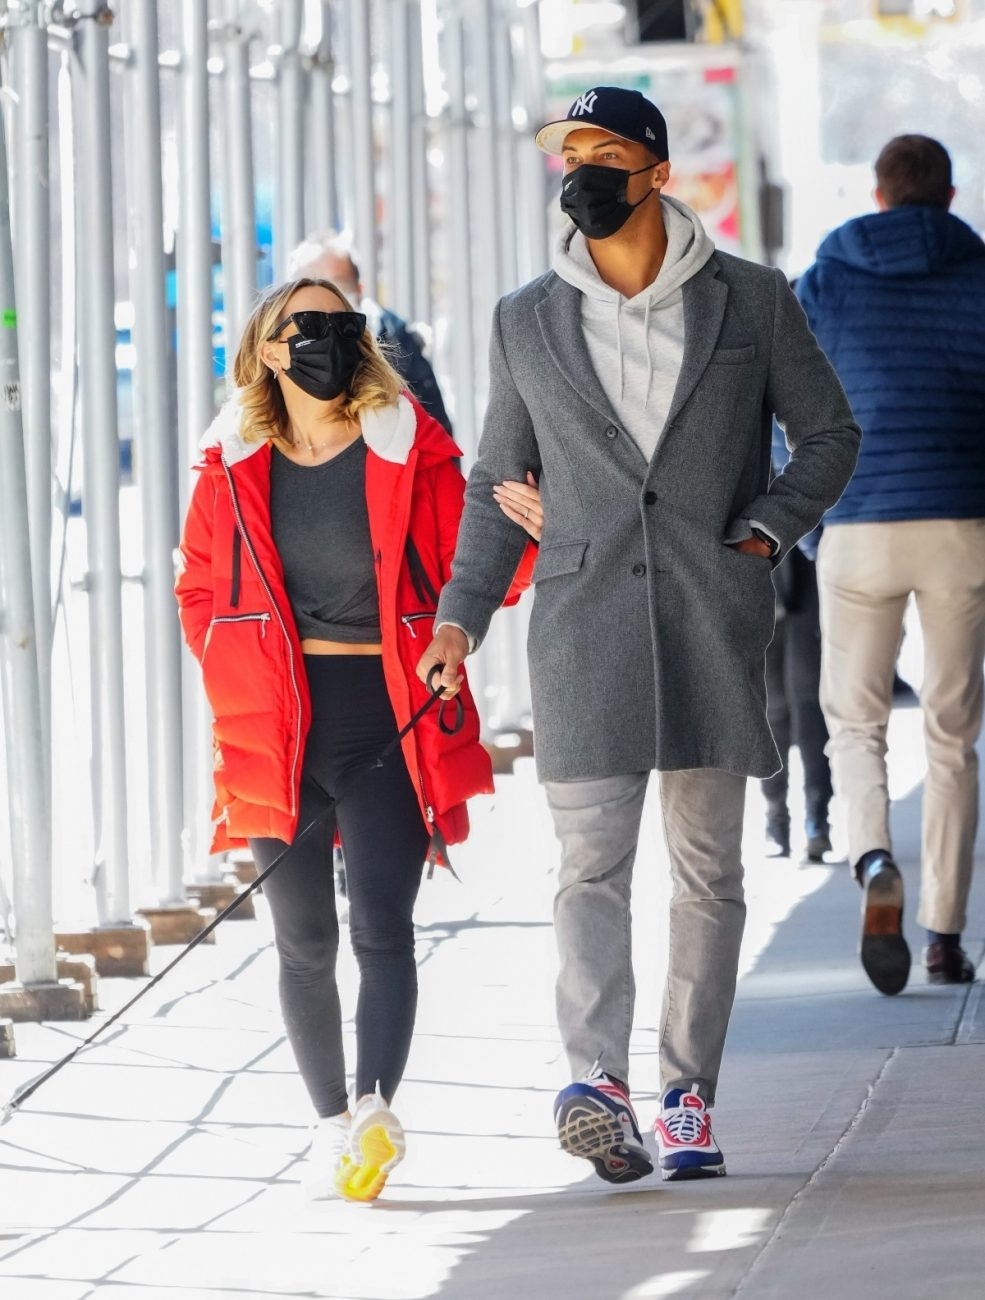 Clare Crawley and Dale Moss stroll in New York City.